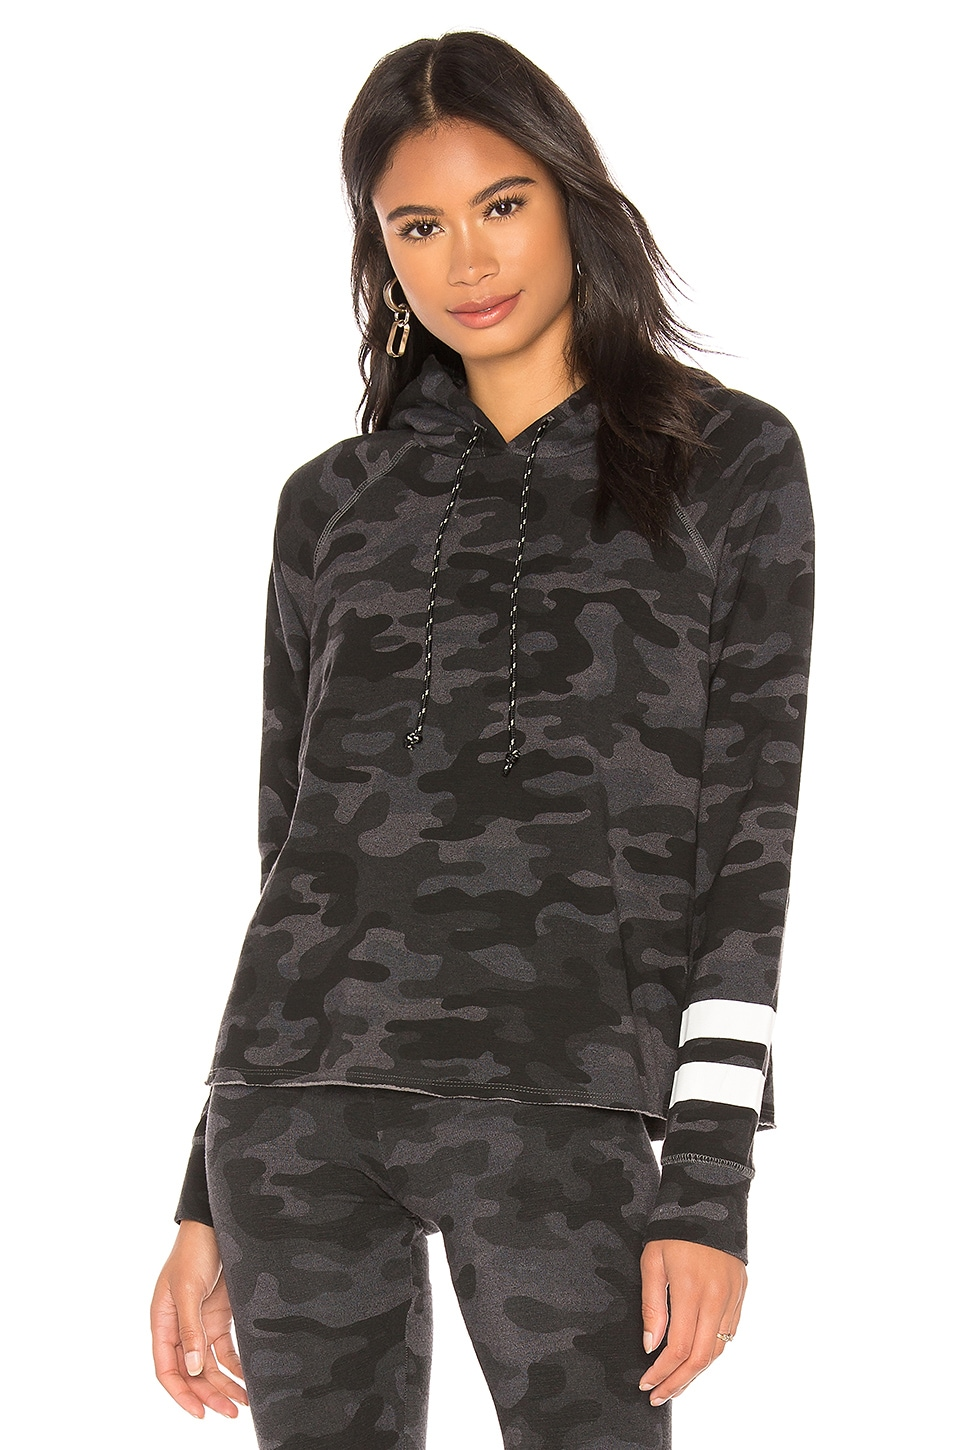 SUNDRY Stripes Camo Crop Hoodie in Charcoal